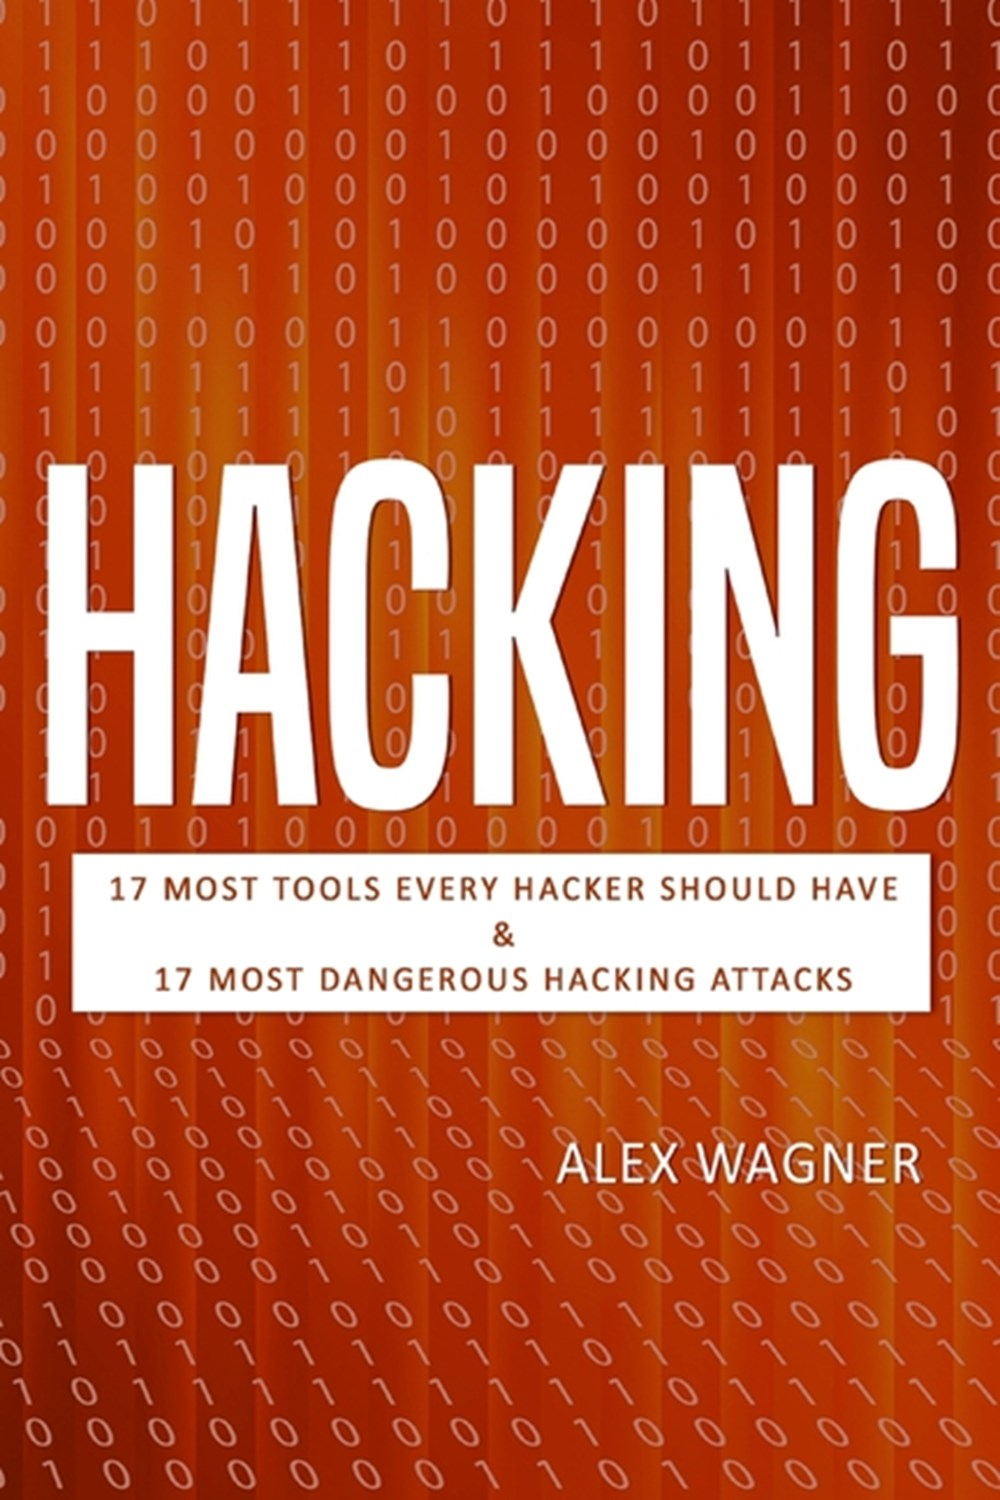 Hacking 17 Must Tools every Hacker should have & 17 Most Dangerous Hacking Attacks